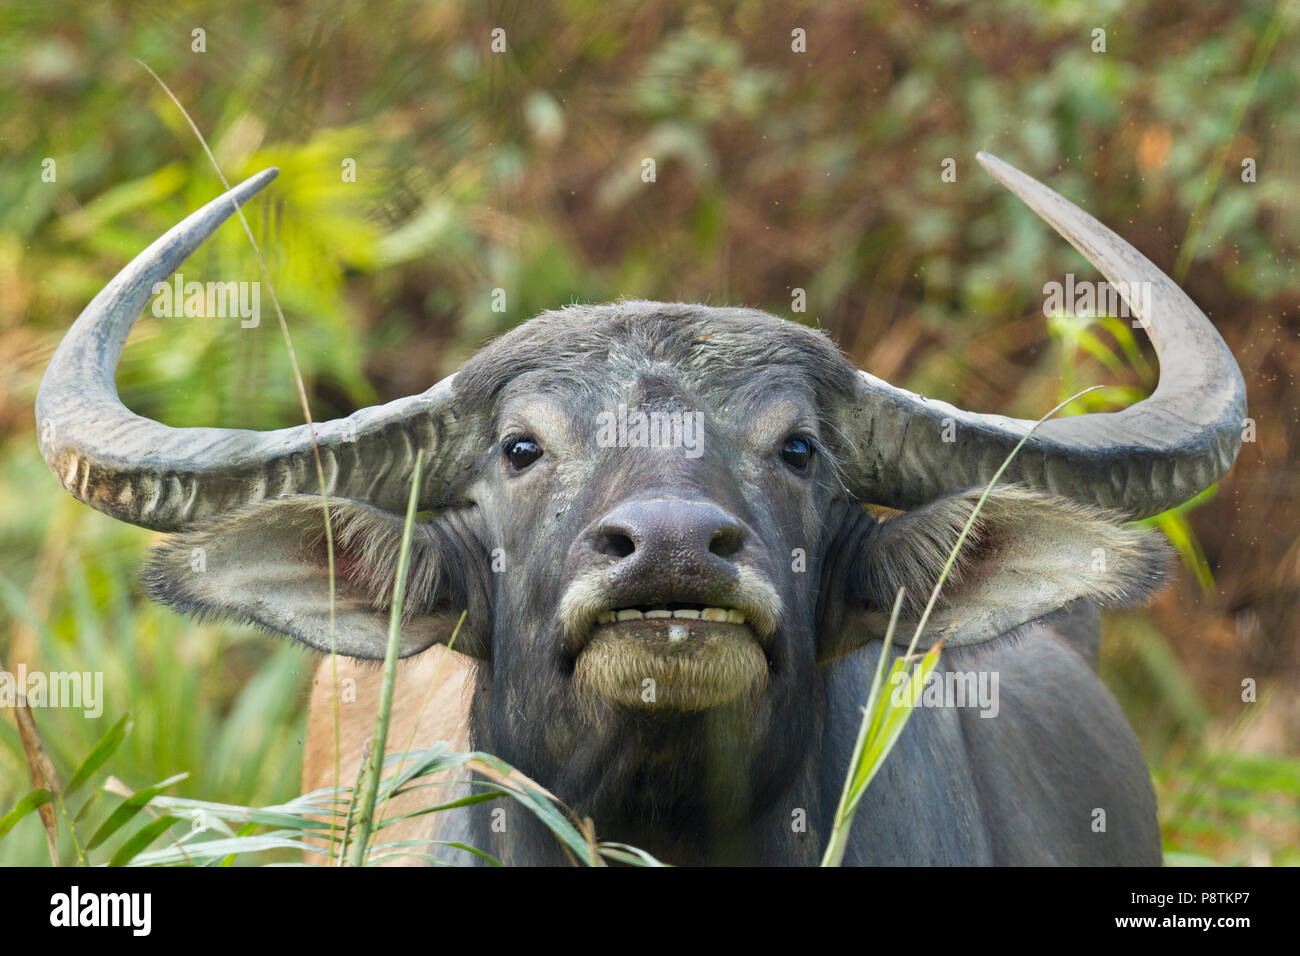 Water buffalo or Bubalus bubalis or domestic Asian water buffalo at Kaziranga national park Assam India - Stock Image